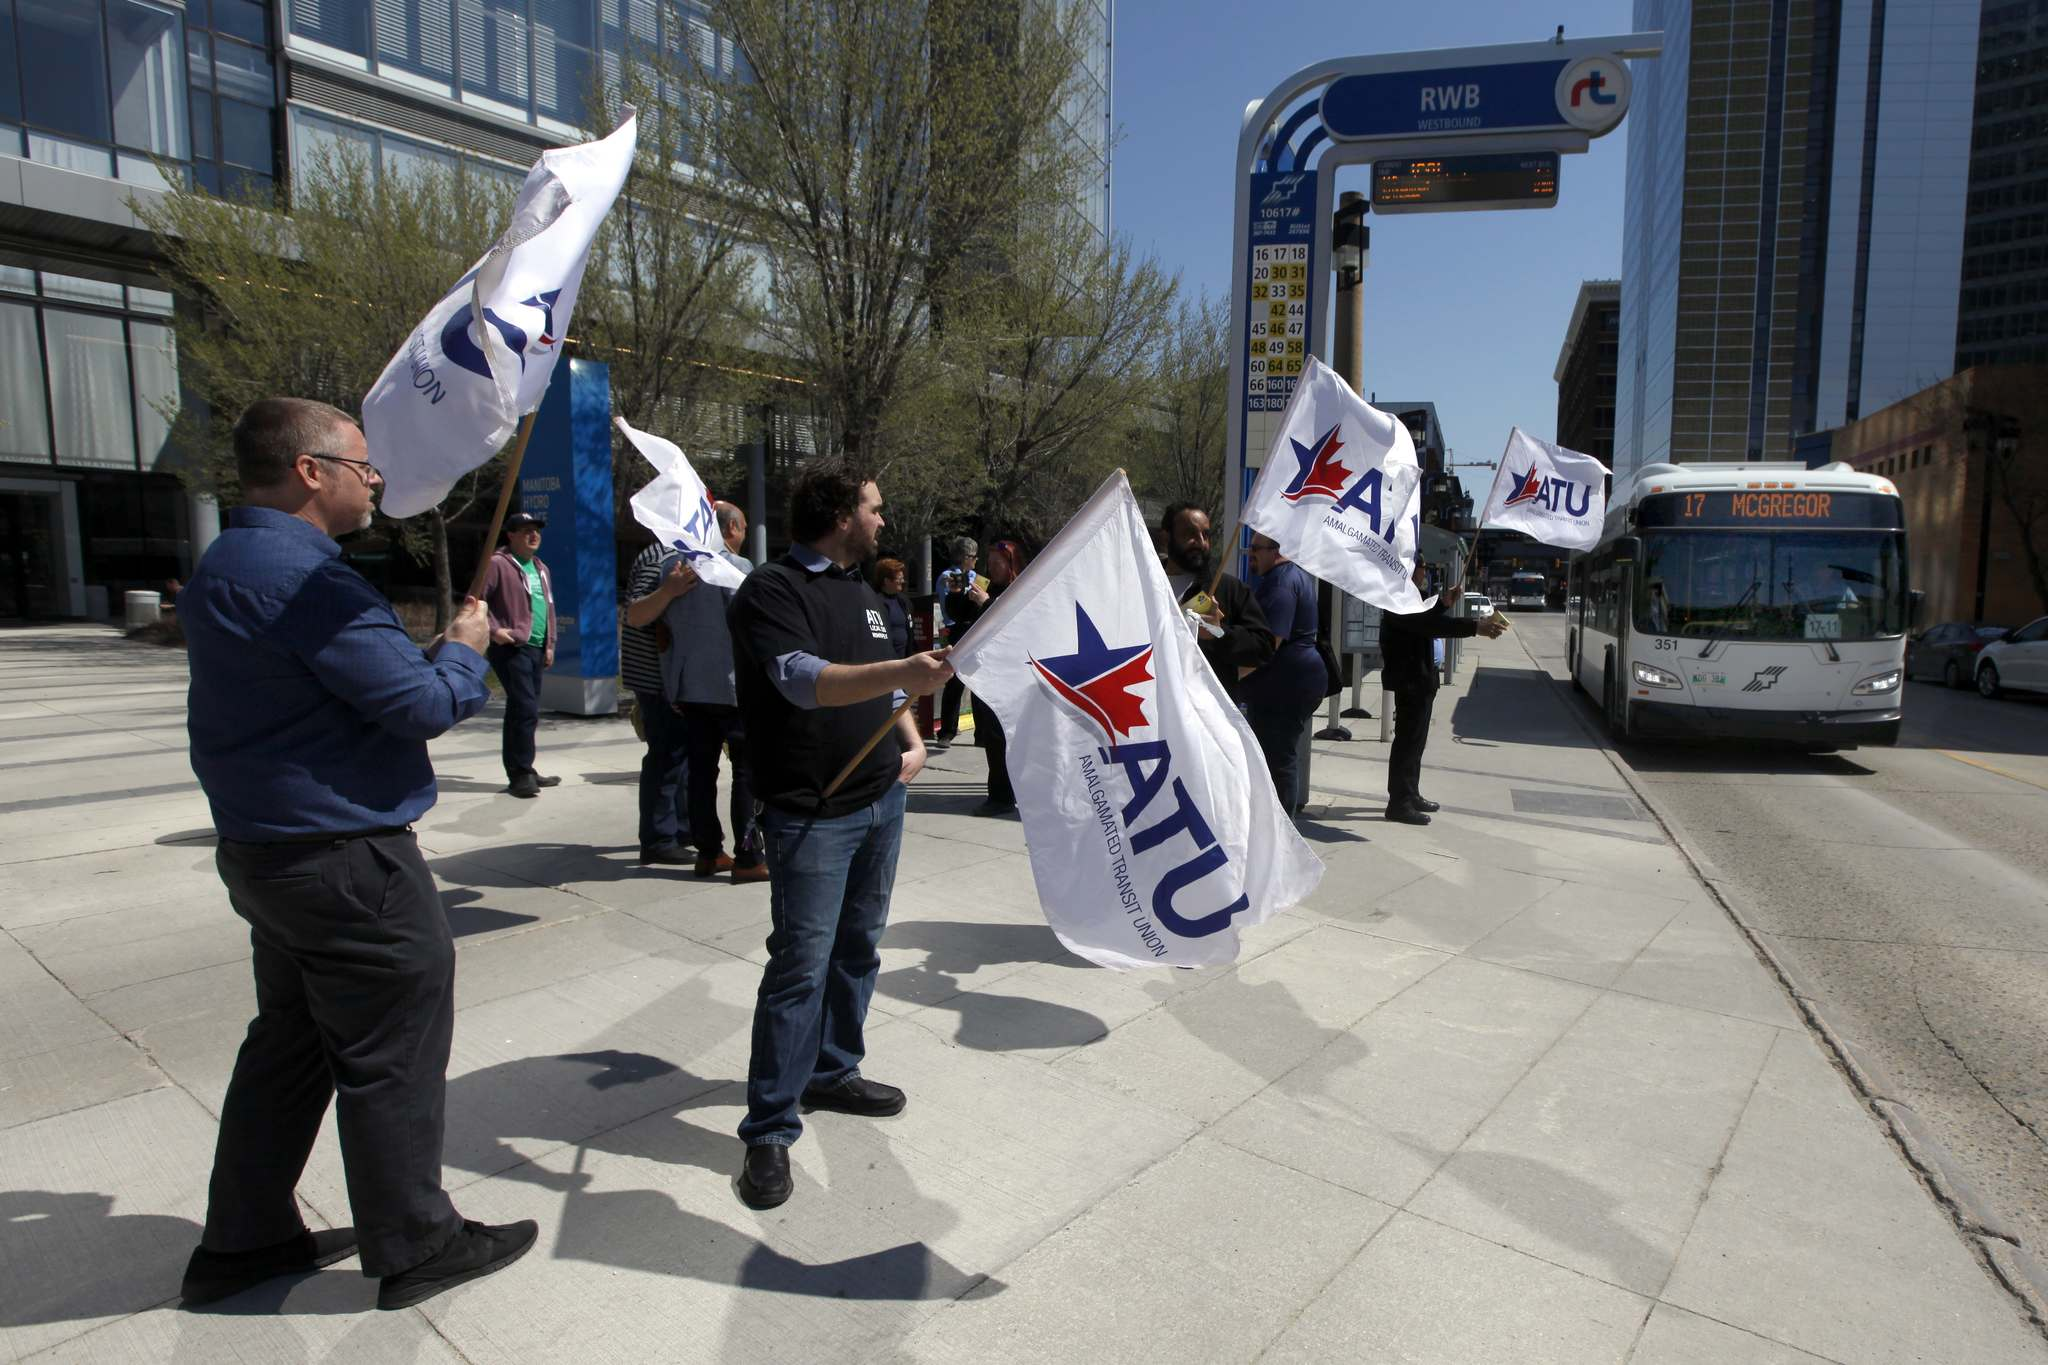 PHIL HOSSACK / WINNIPEG FREE PRESS</p><p>Amalgamated Transit Union members wave flags at Edmonton Street and Graham Avenue on Monday.</p>